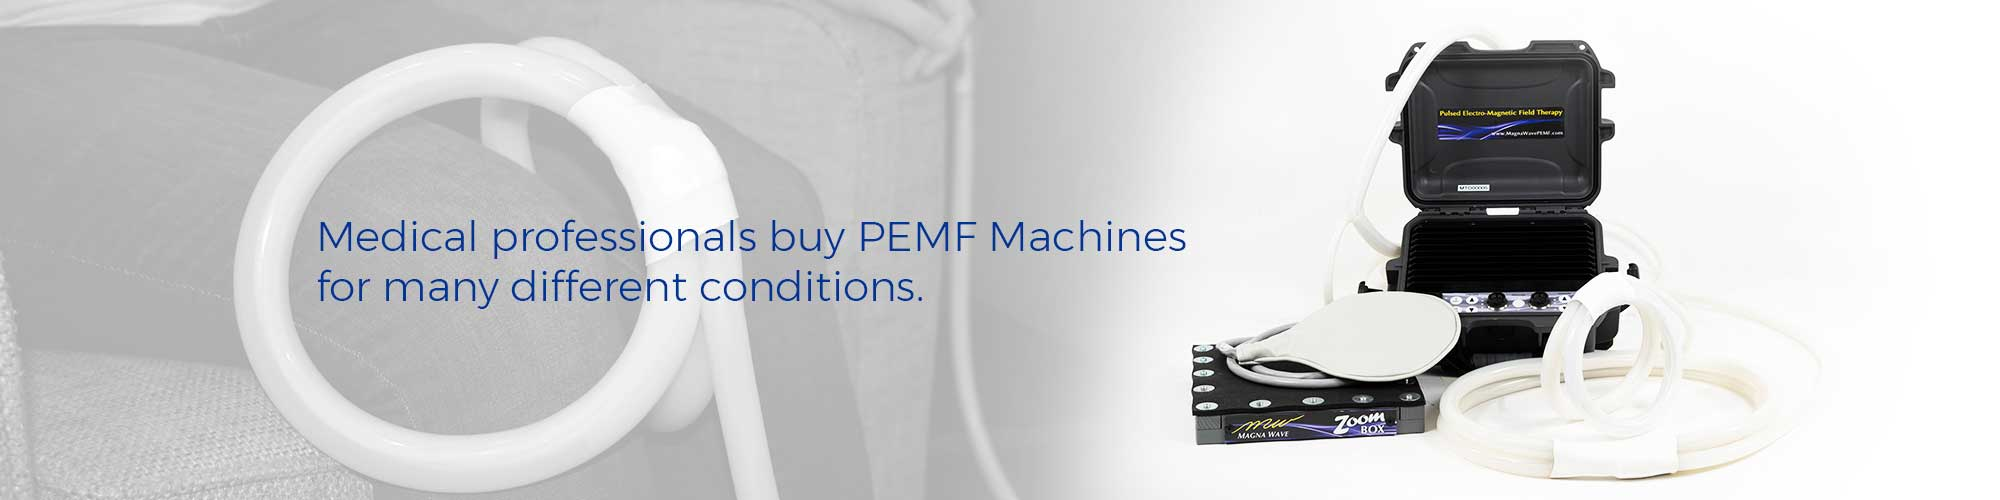 Medical professionals buy PEMF Machines for many different conditions.